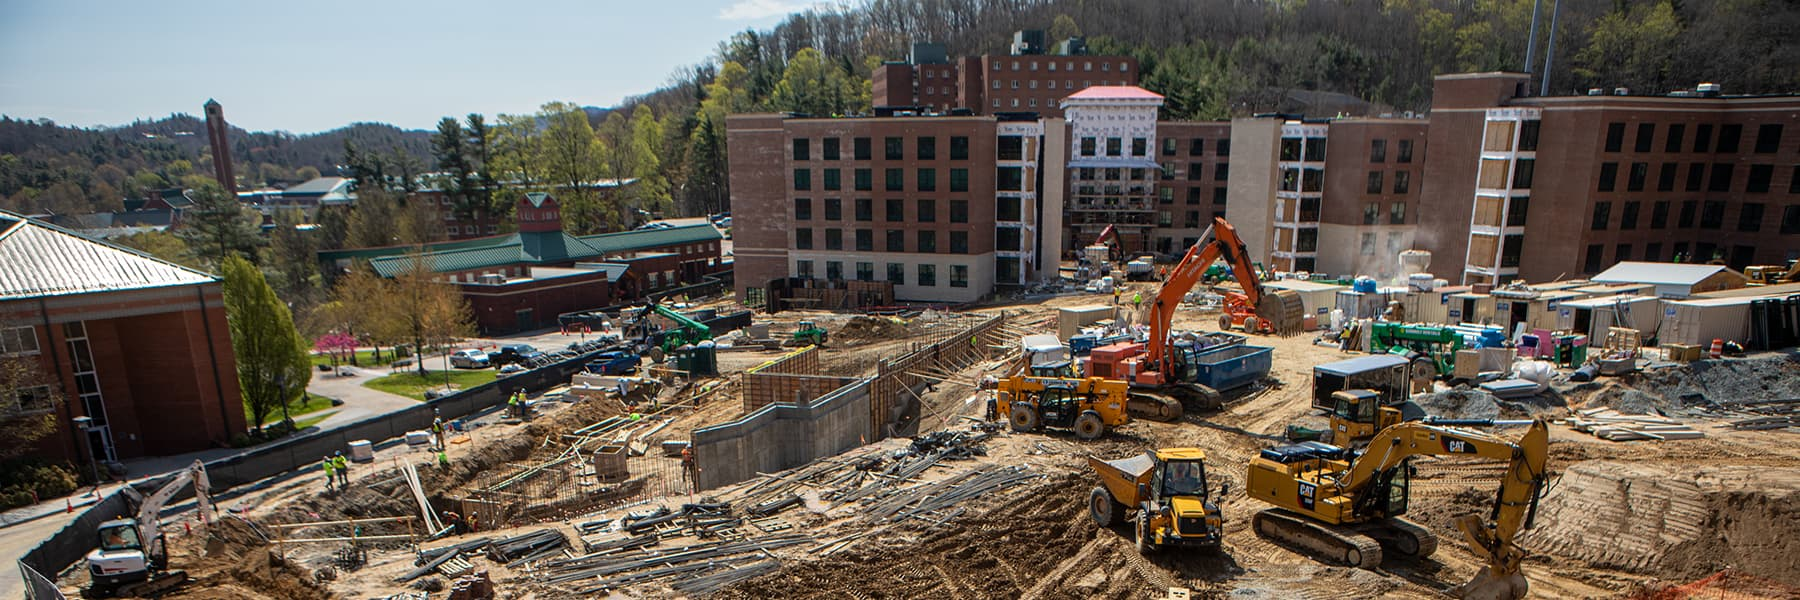 Residence halls construction